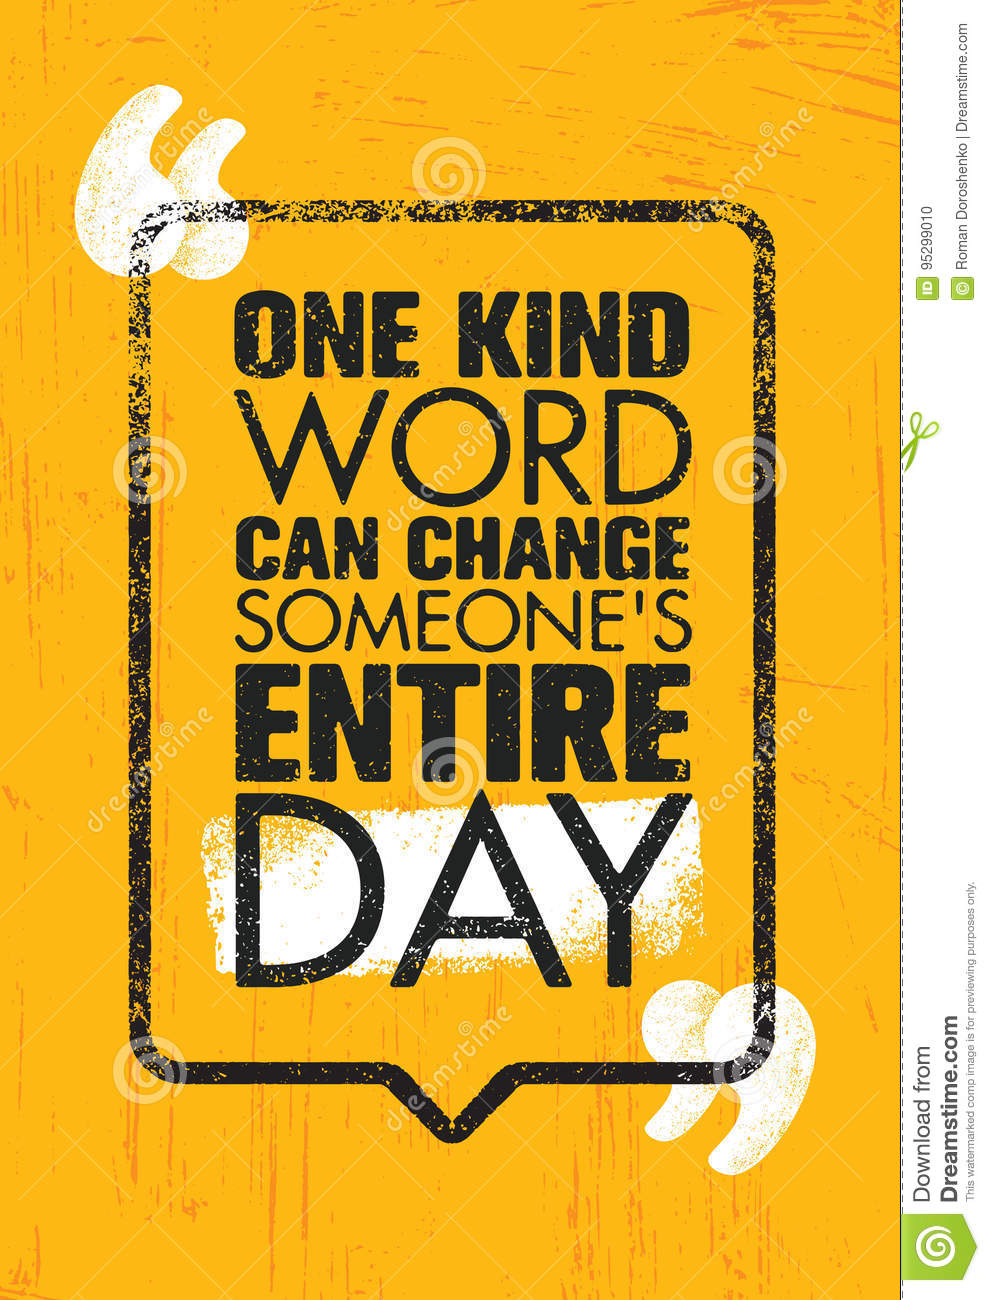 One Kind Word Can Change Someone Entire Day Inspiring Creative Motivation Quote Poster Template Stock Vector Illustration Of Frame Inspire 95299010